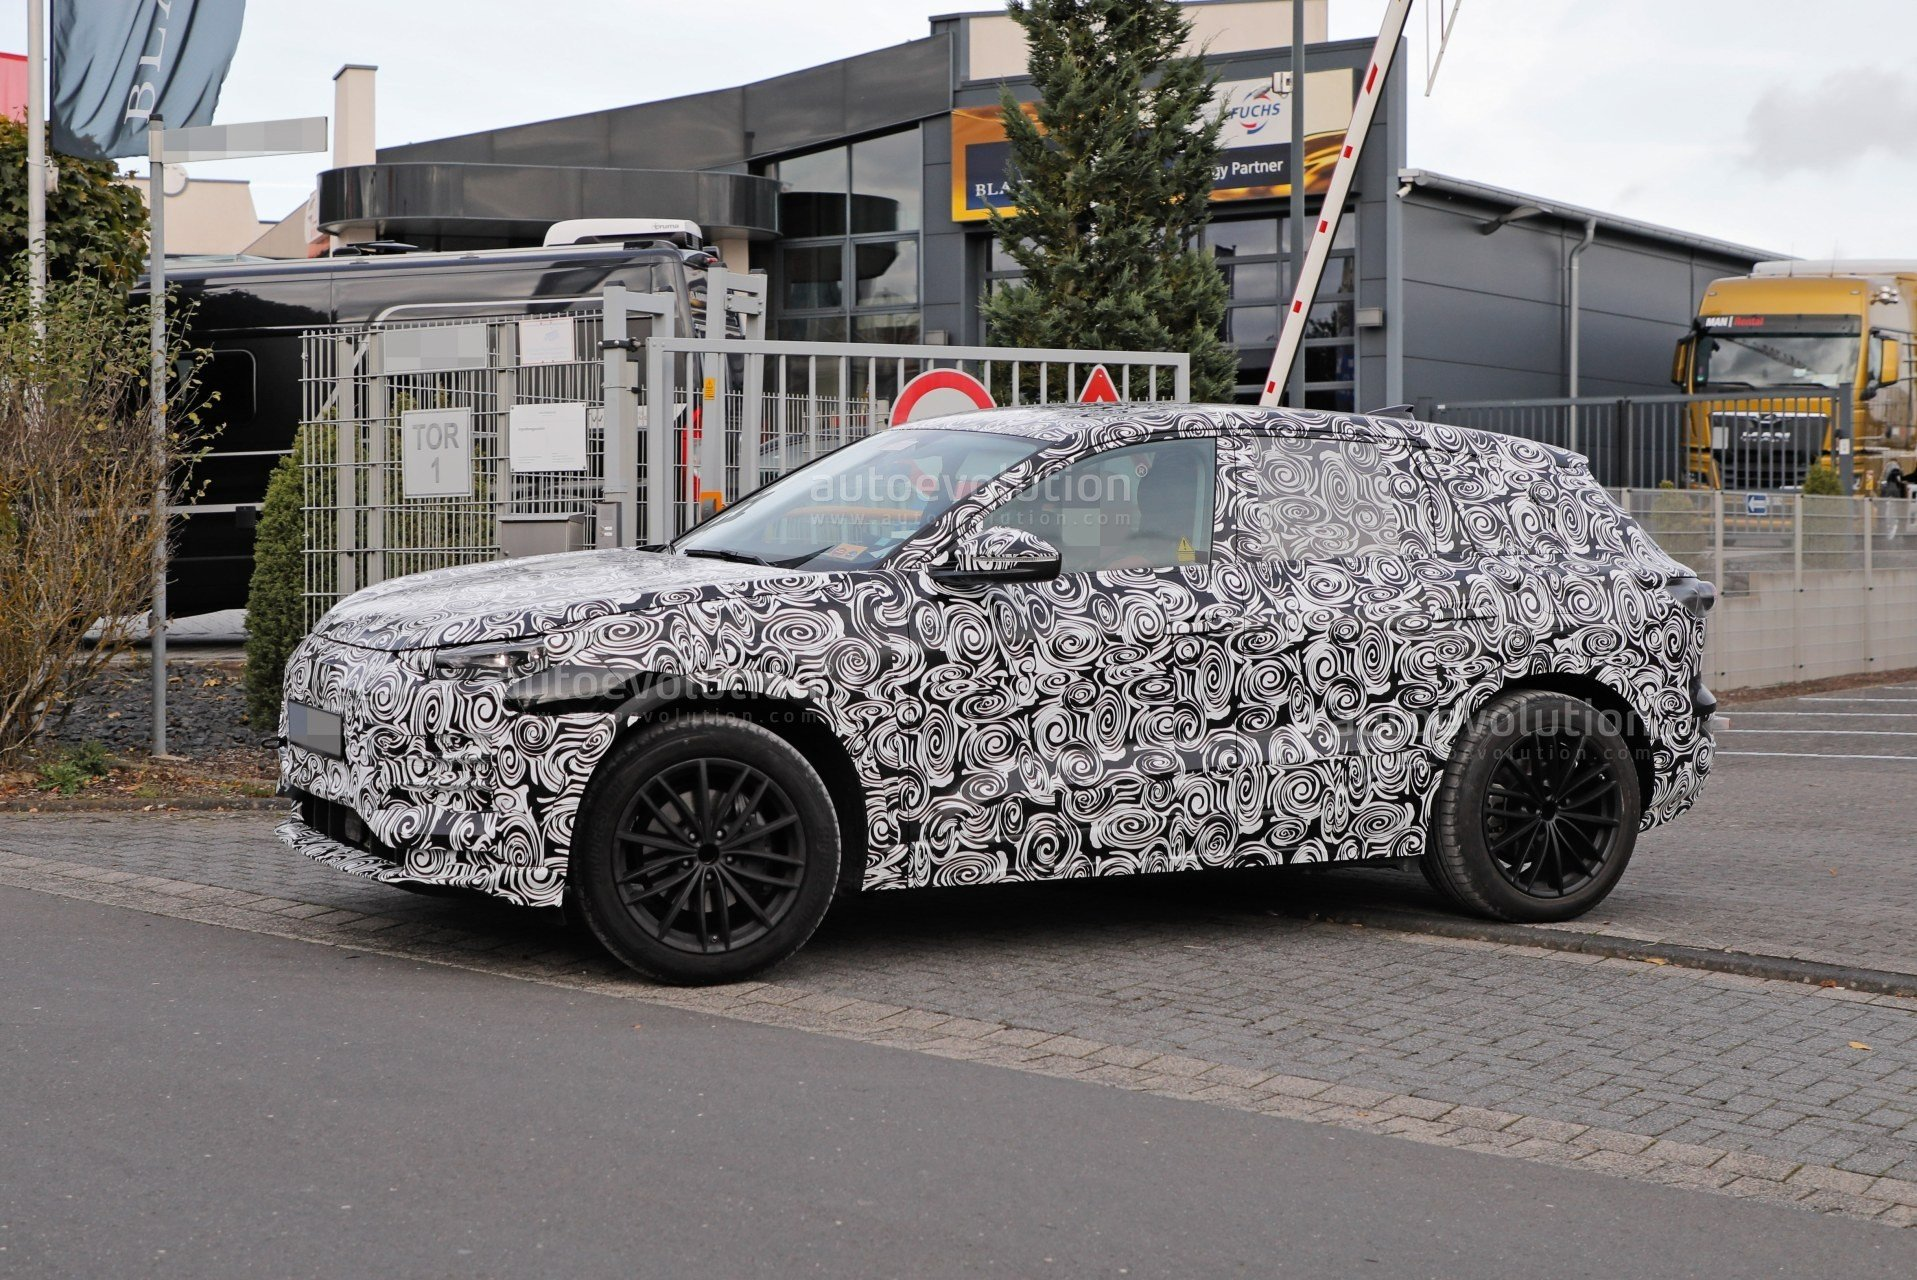 2023-audi-q6-e-tron-prototype-spied-wearing-full-camouflage-is-fully-electric_6.jpg